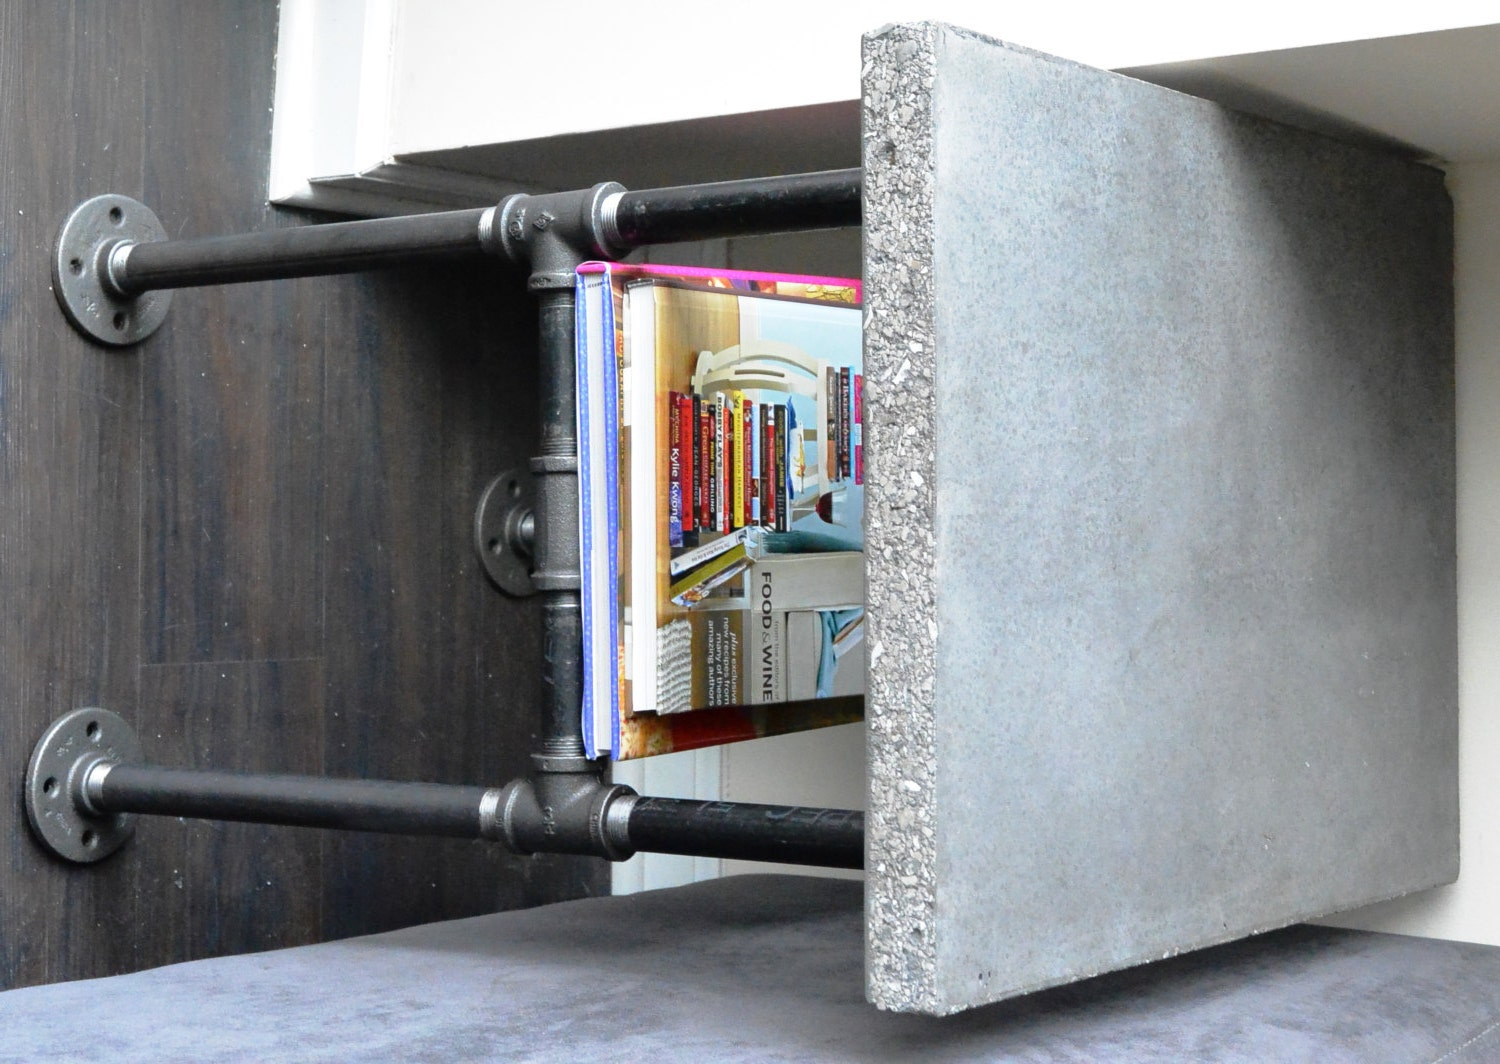 Industrial concrete and plumbing pipe side table